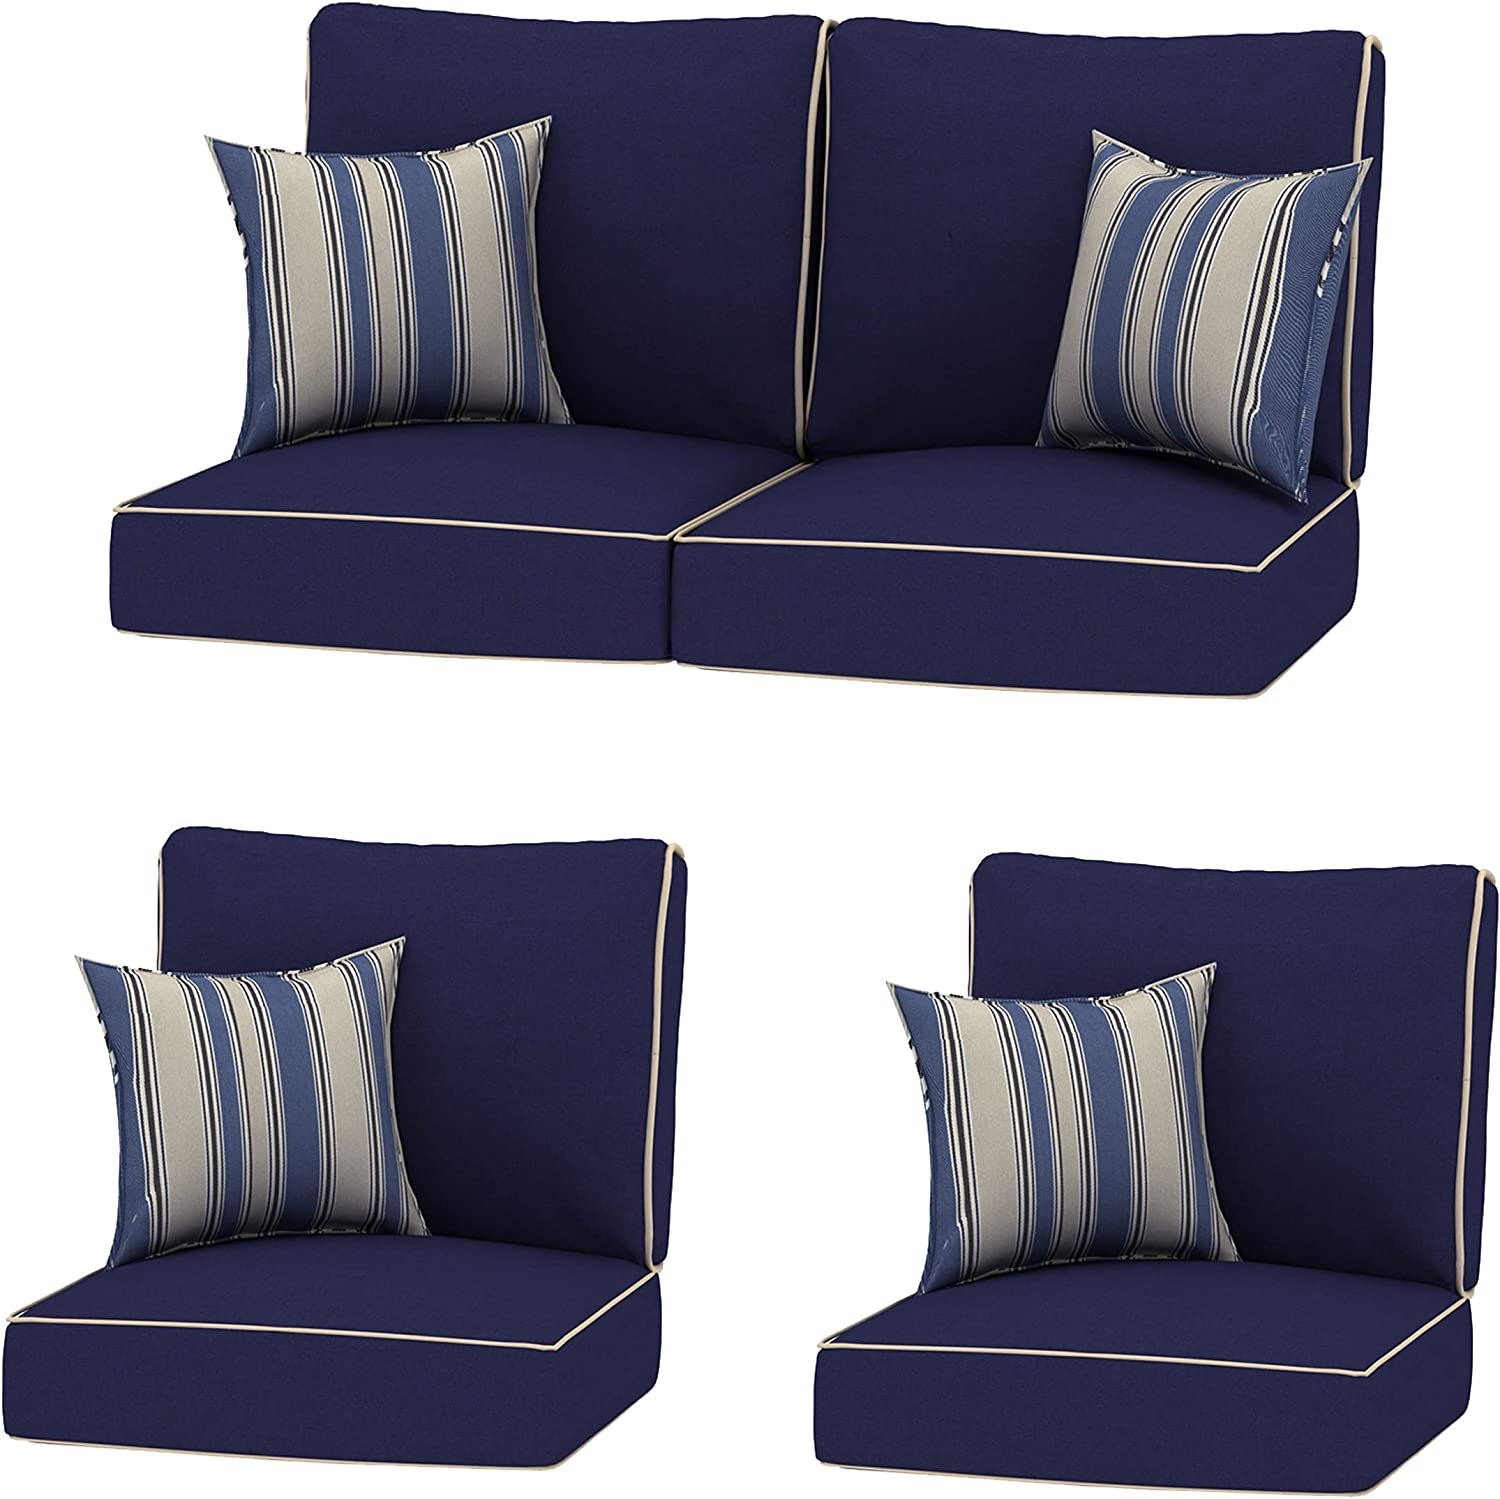 Creative Living 4PC Chat Group Outdoor Deep Seating Refresh Patio 24x24 Replacement Cushions with Decorative Pillows, Navy